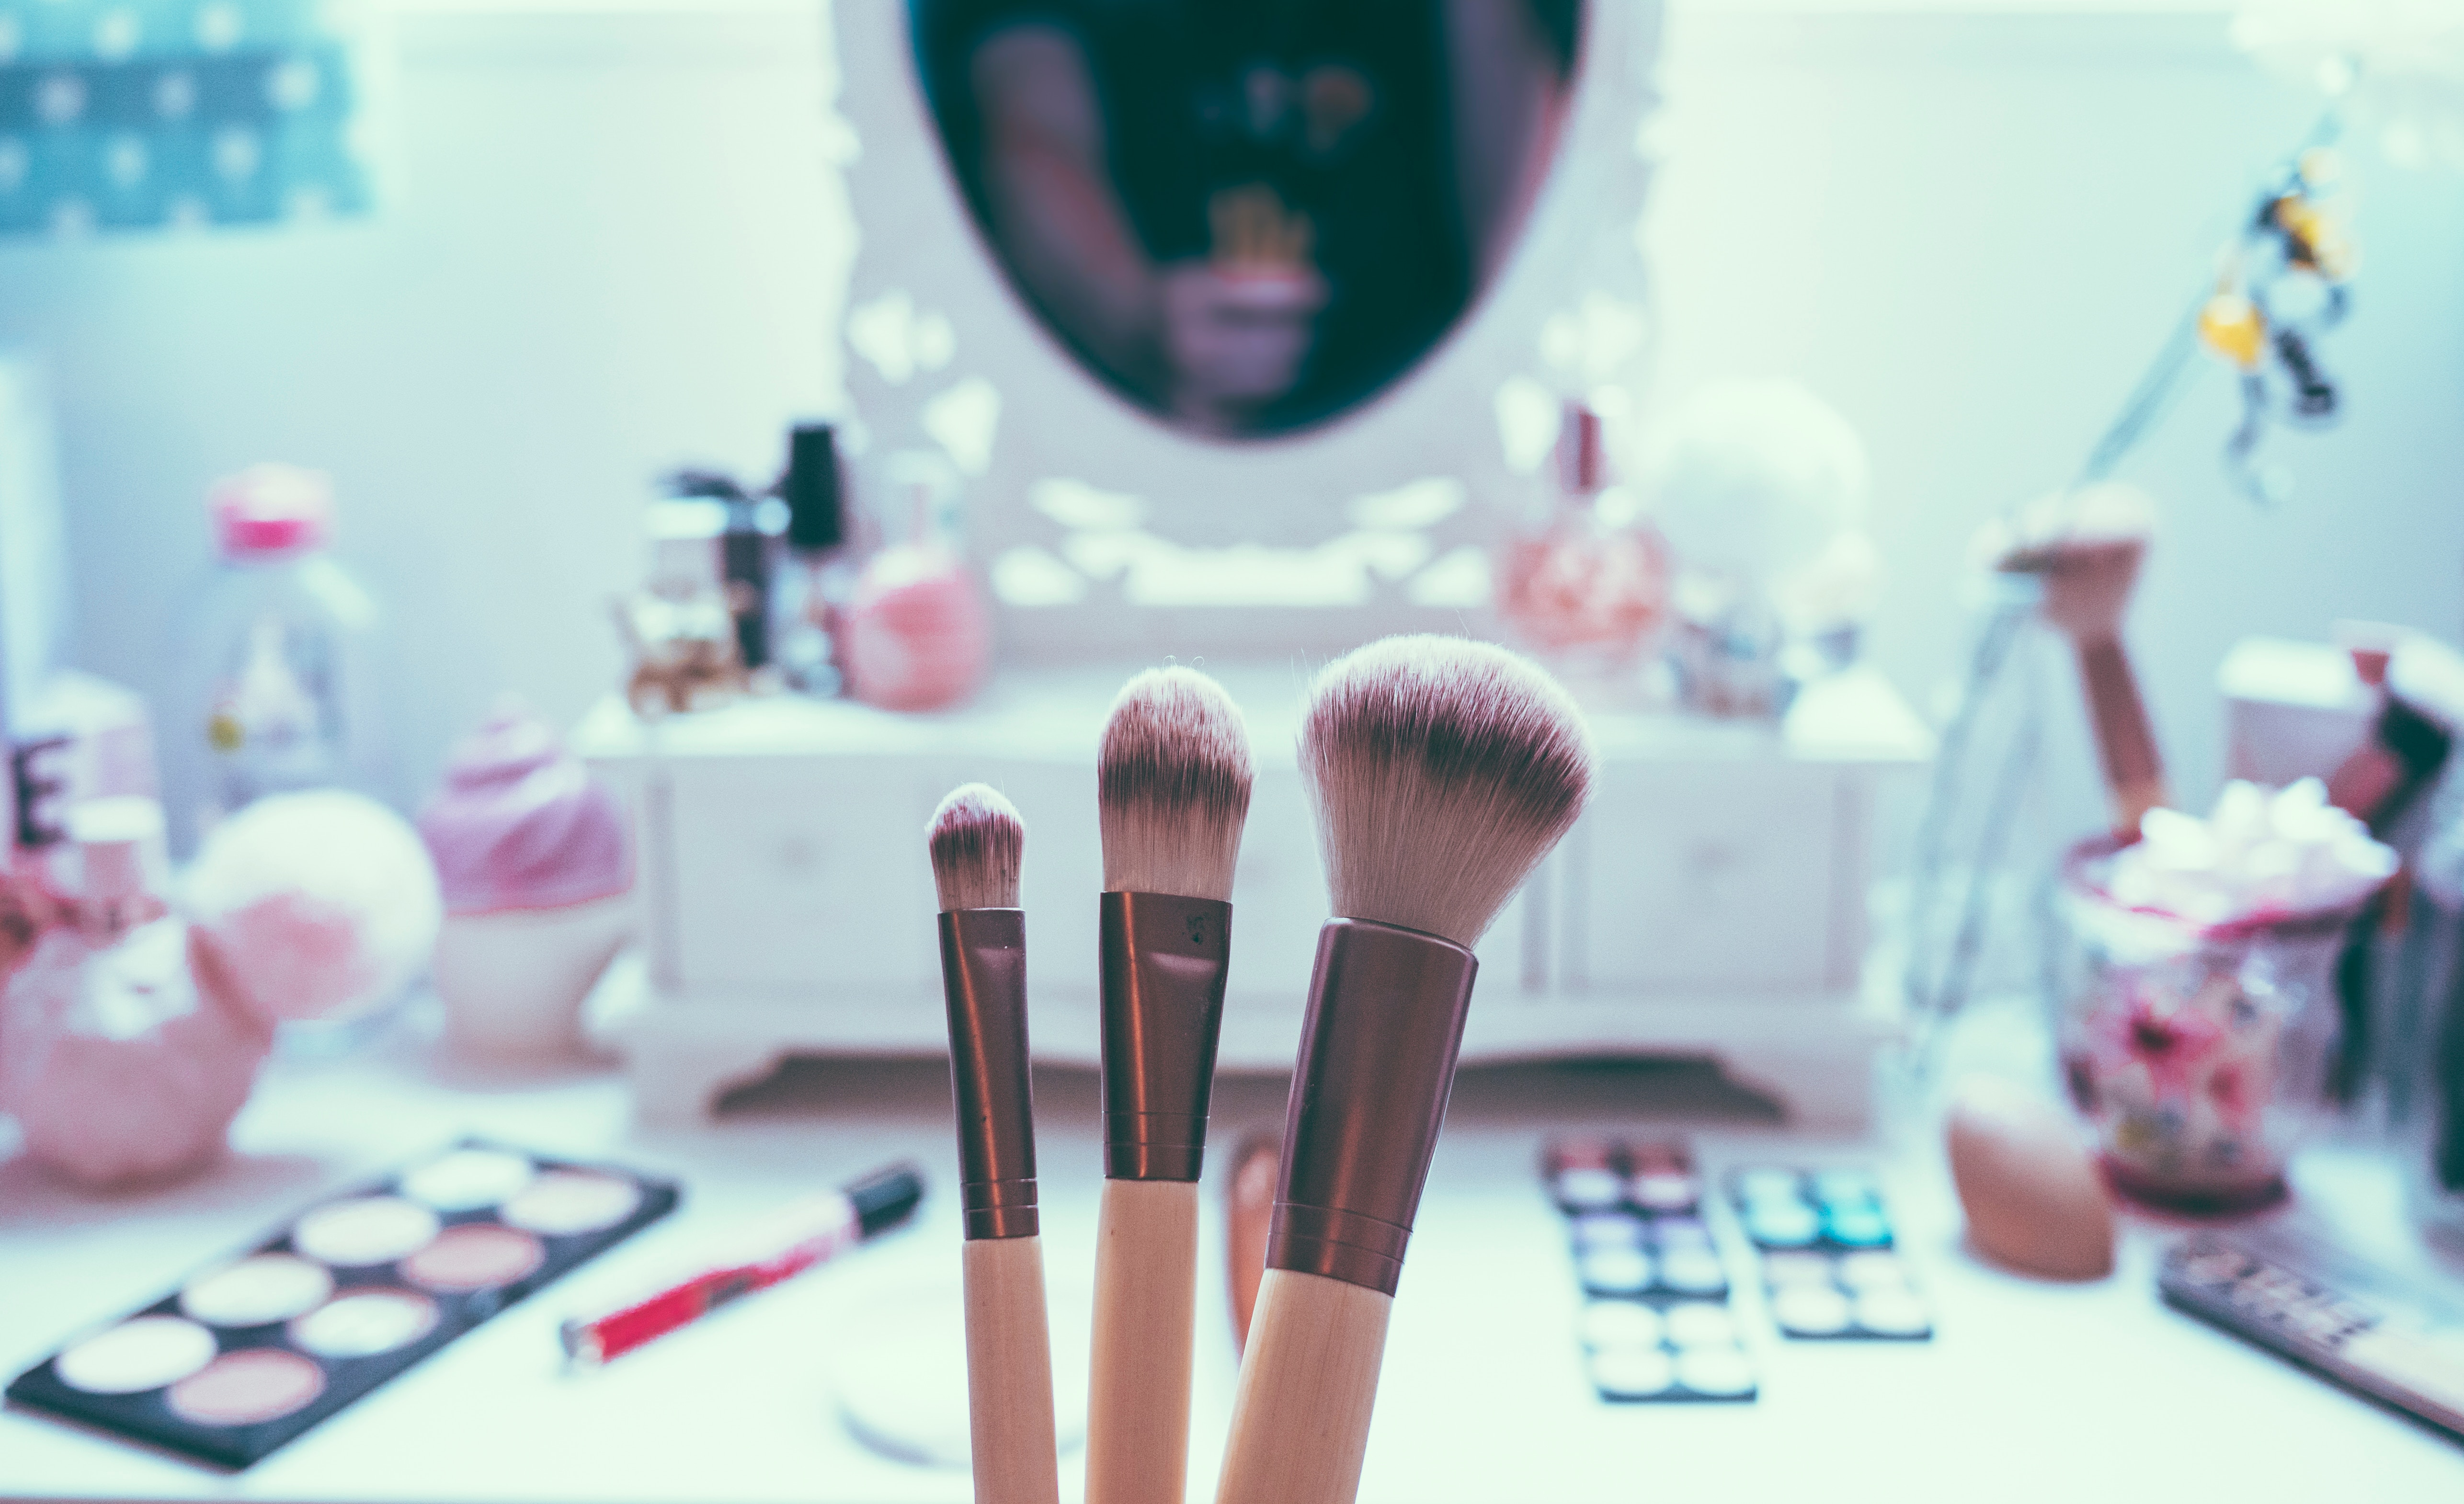 , 5 Makeup Mistakes You Have to Avoid if You Don't Want to Look Older